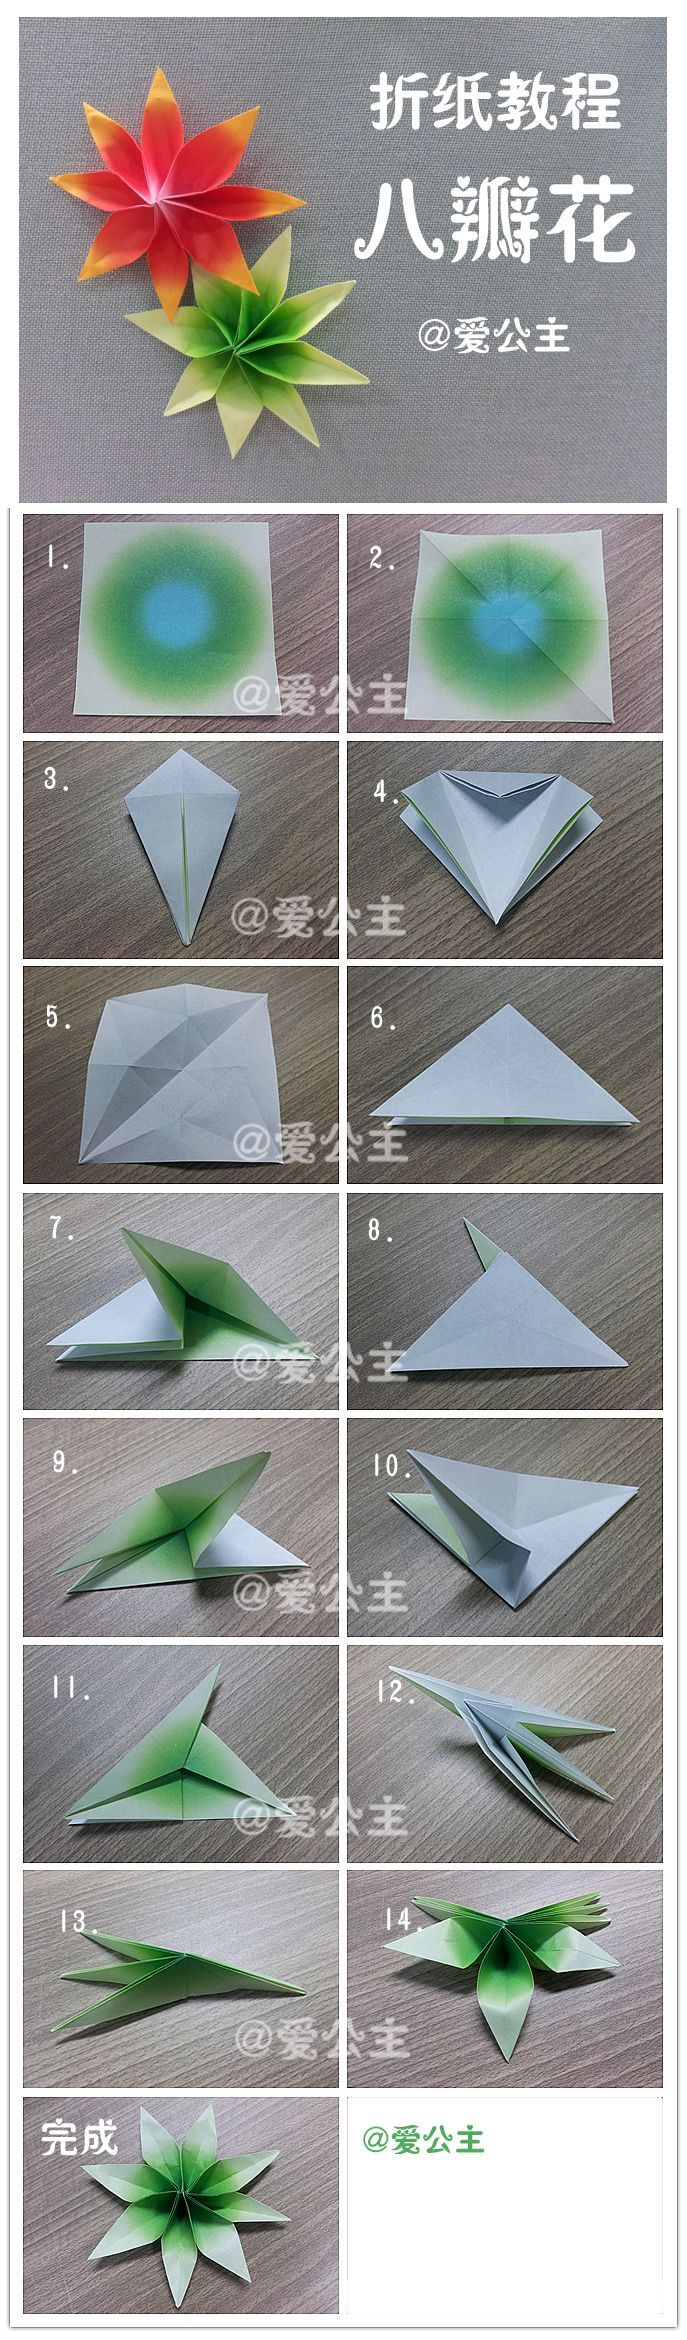 Pin By Noee Sanchez On Para Doblar Pinterest Origami Craft And